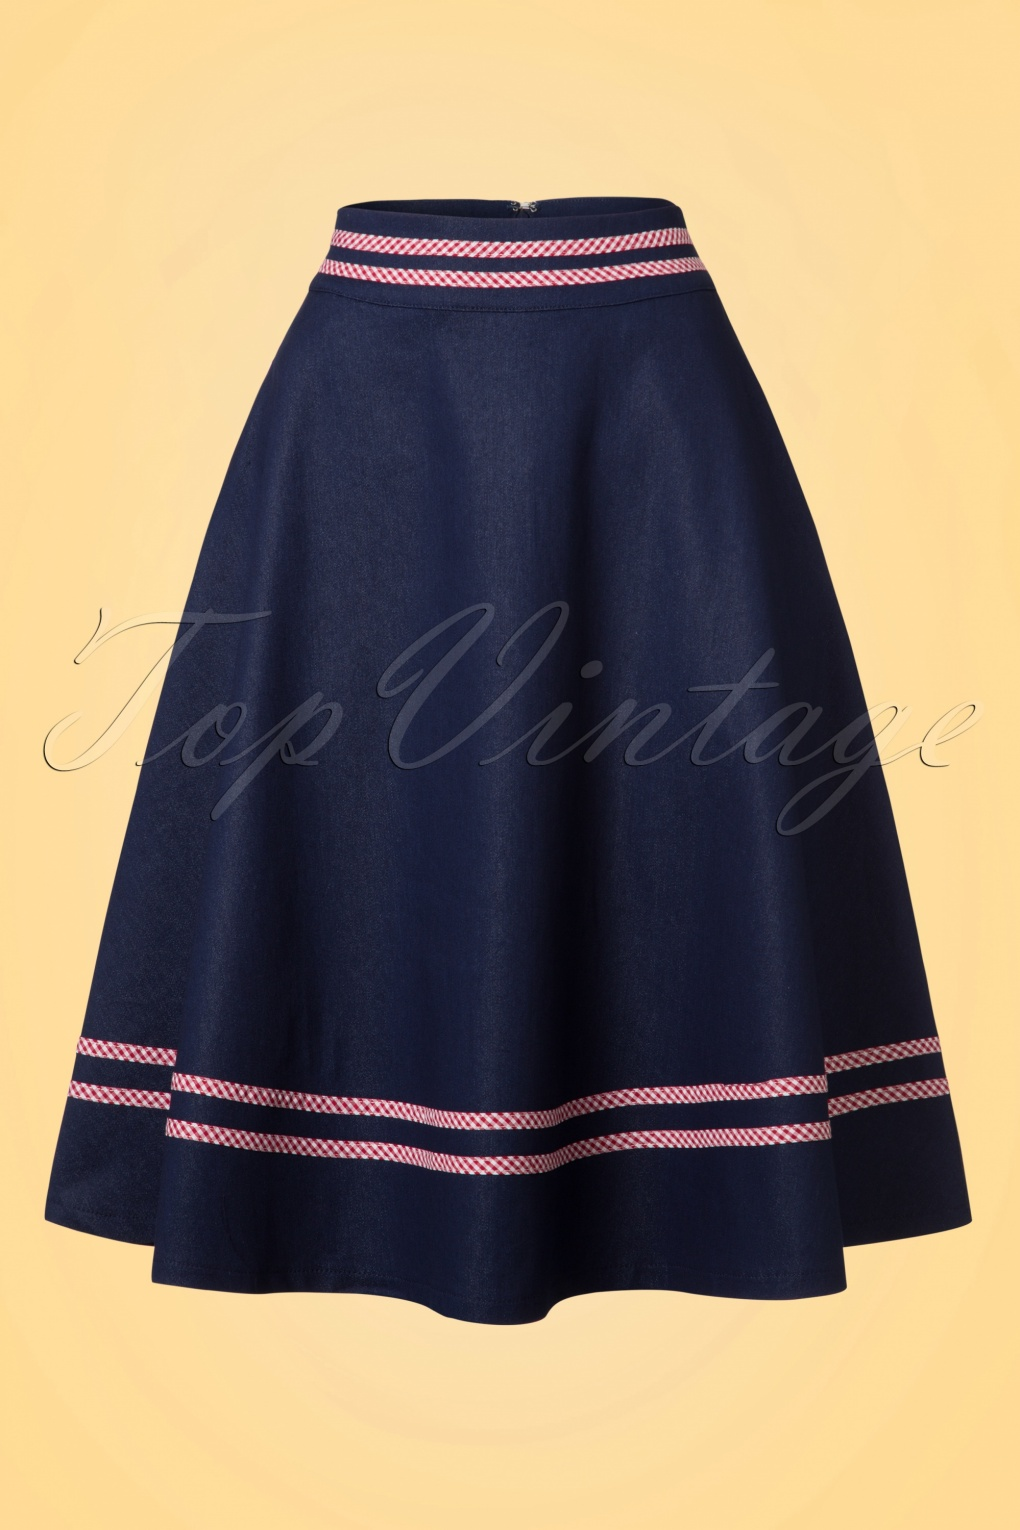 1940s Teenage Fashion: Girls 50s Jadore Swing Skirt in Navy £43.86 AT vintagedancer.com